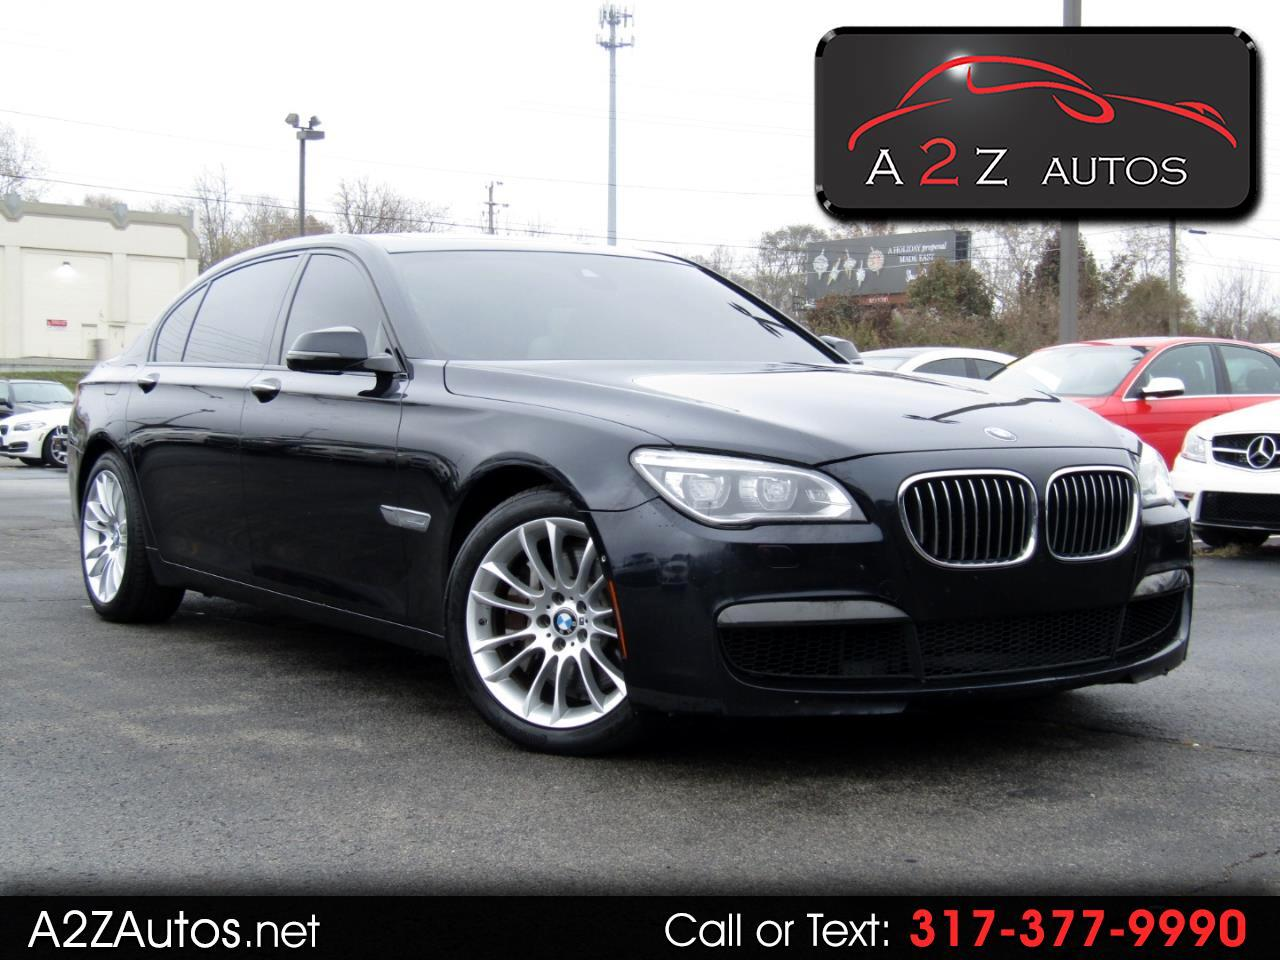 2013 BMW 750Li xDrive LXI